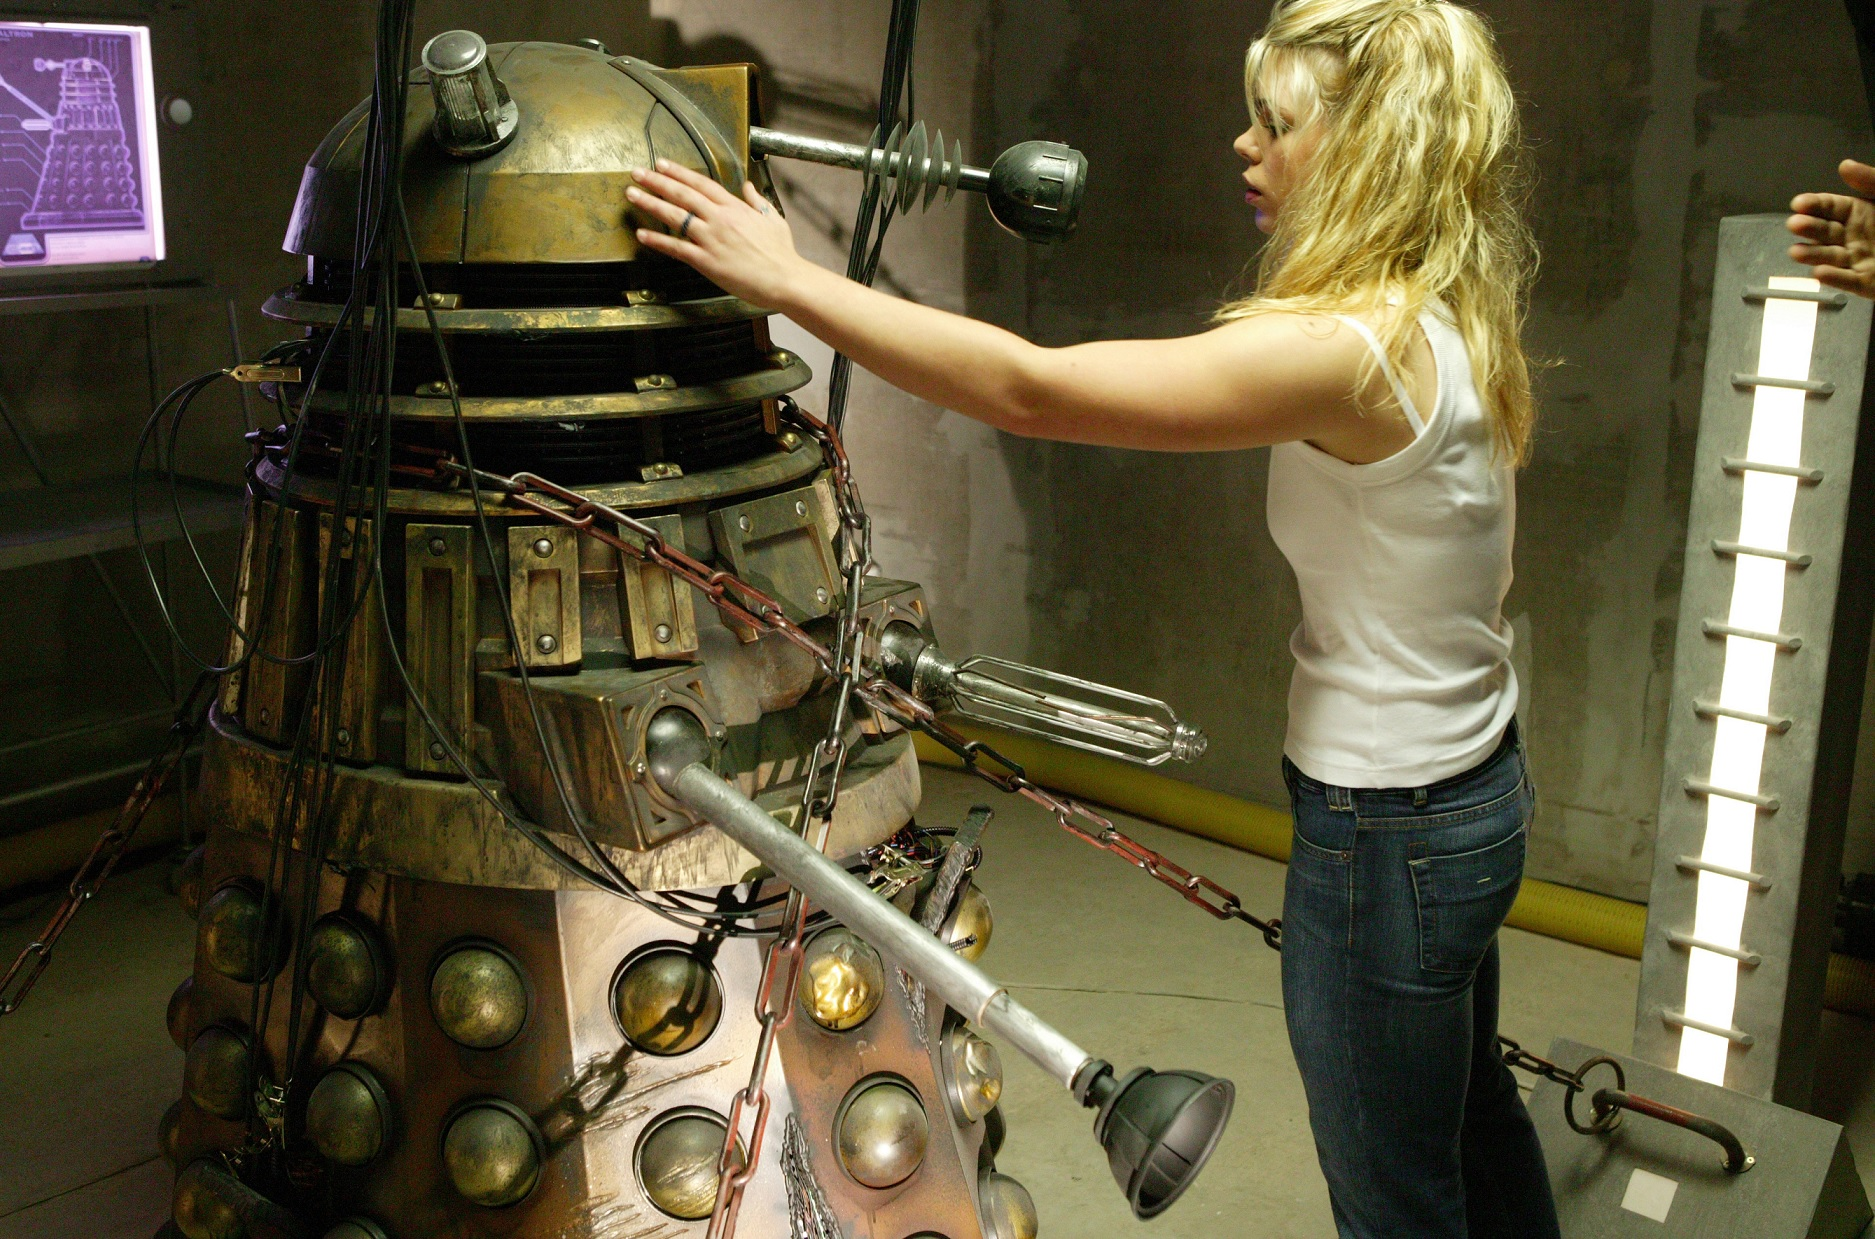 Join in on the Dalek Rewatch with Rob Shearman Tomorrow